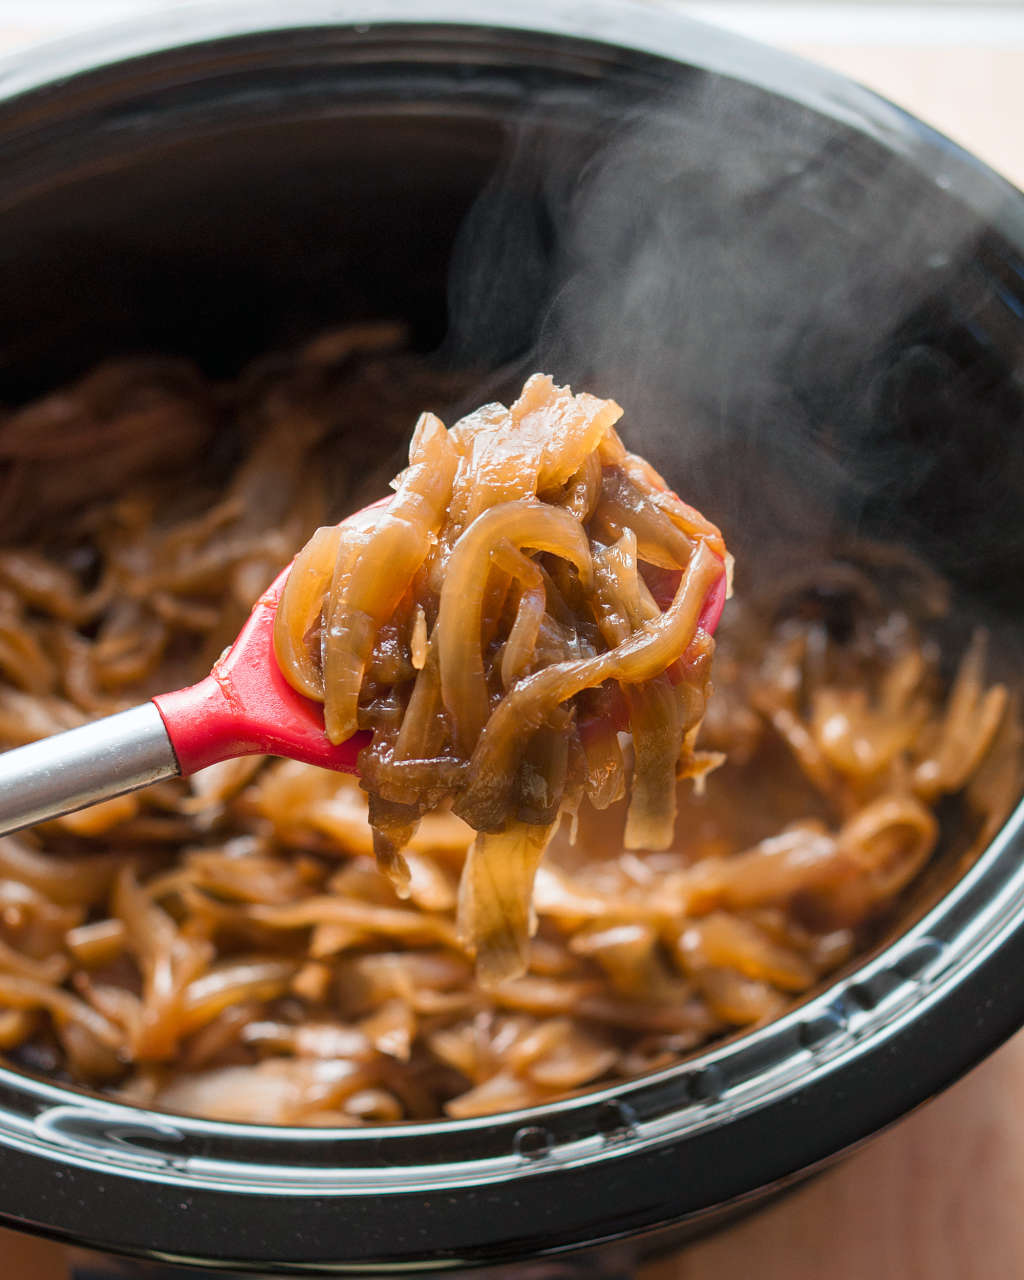 There's an Easier Way to Make a Batch of Caramelized Onions